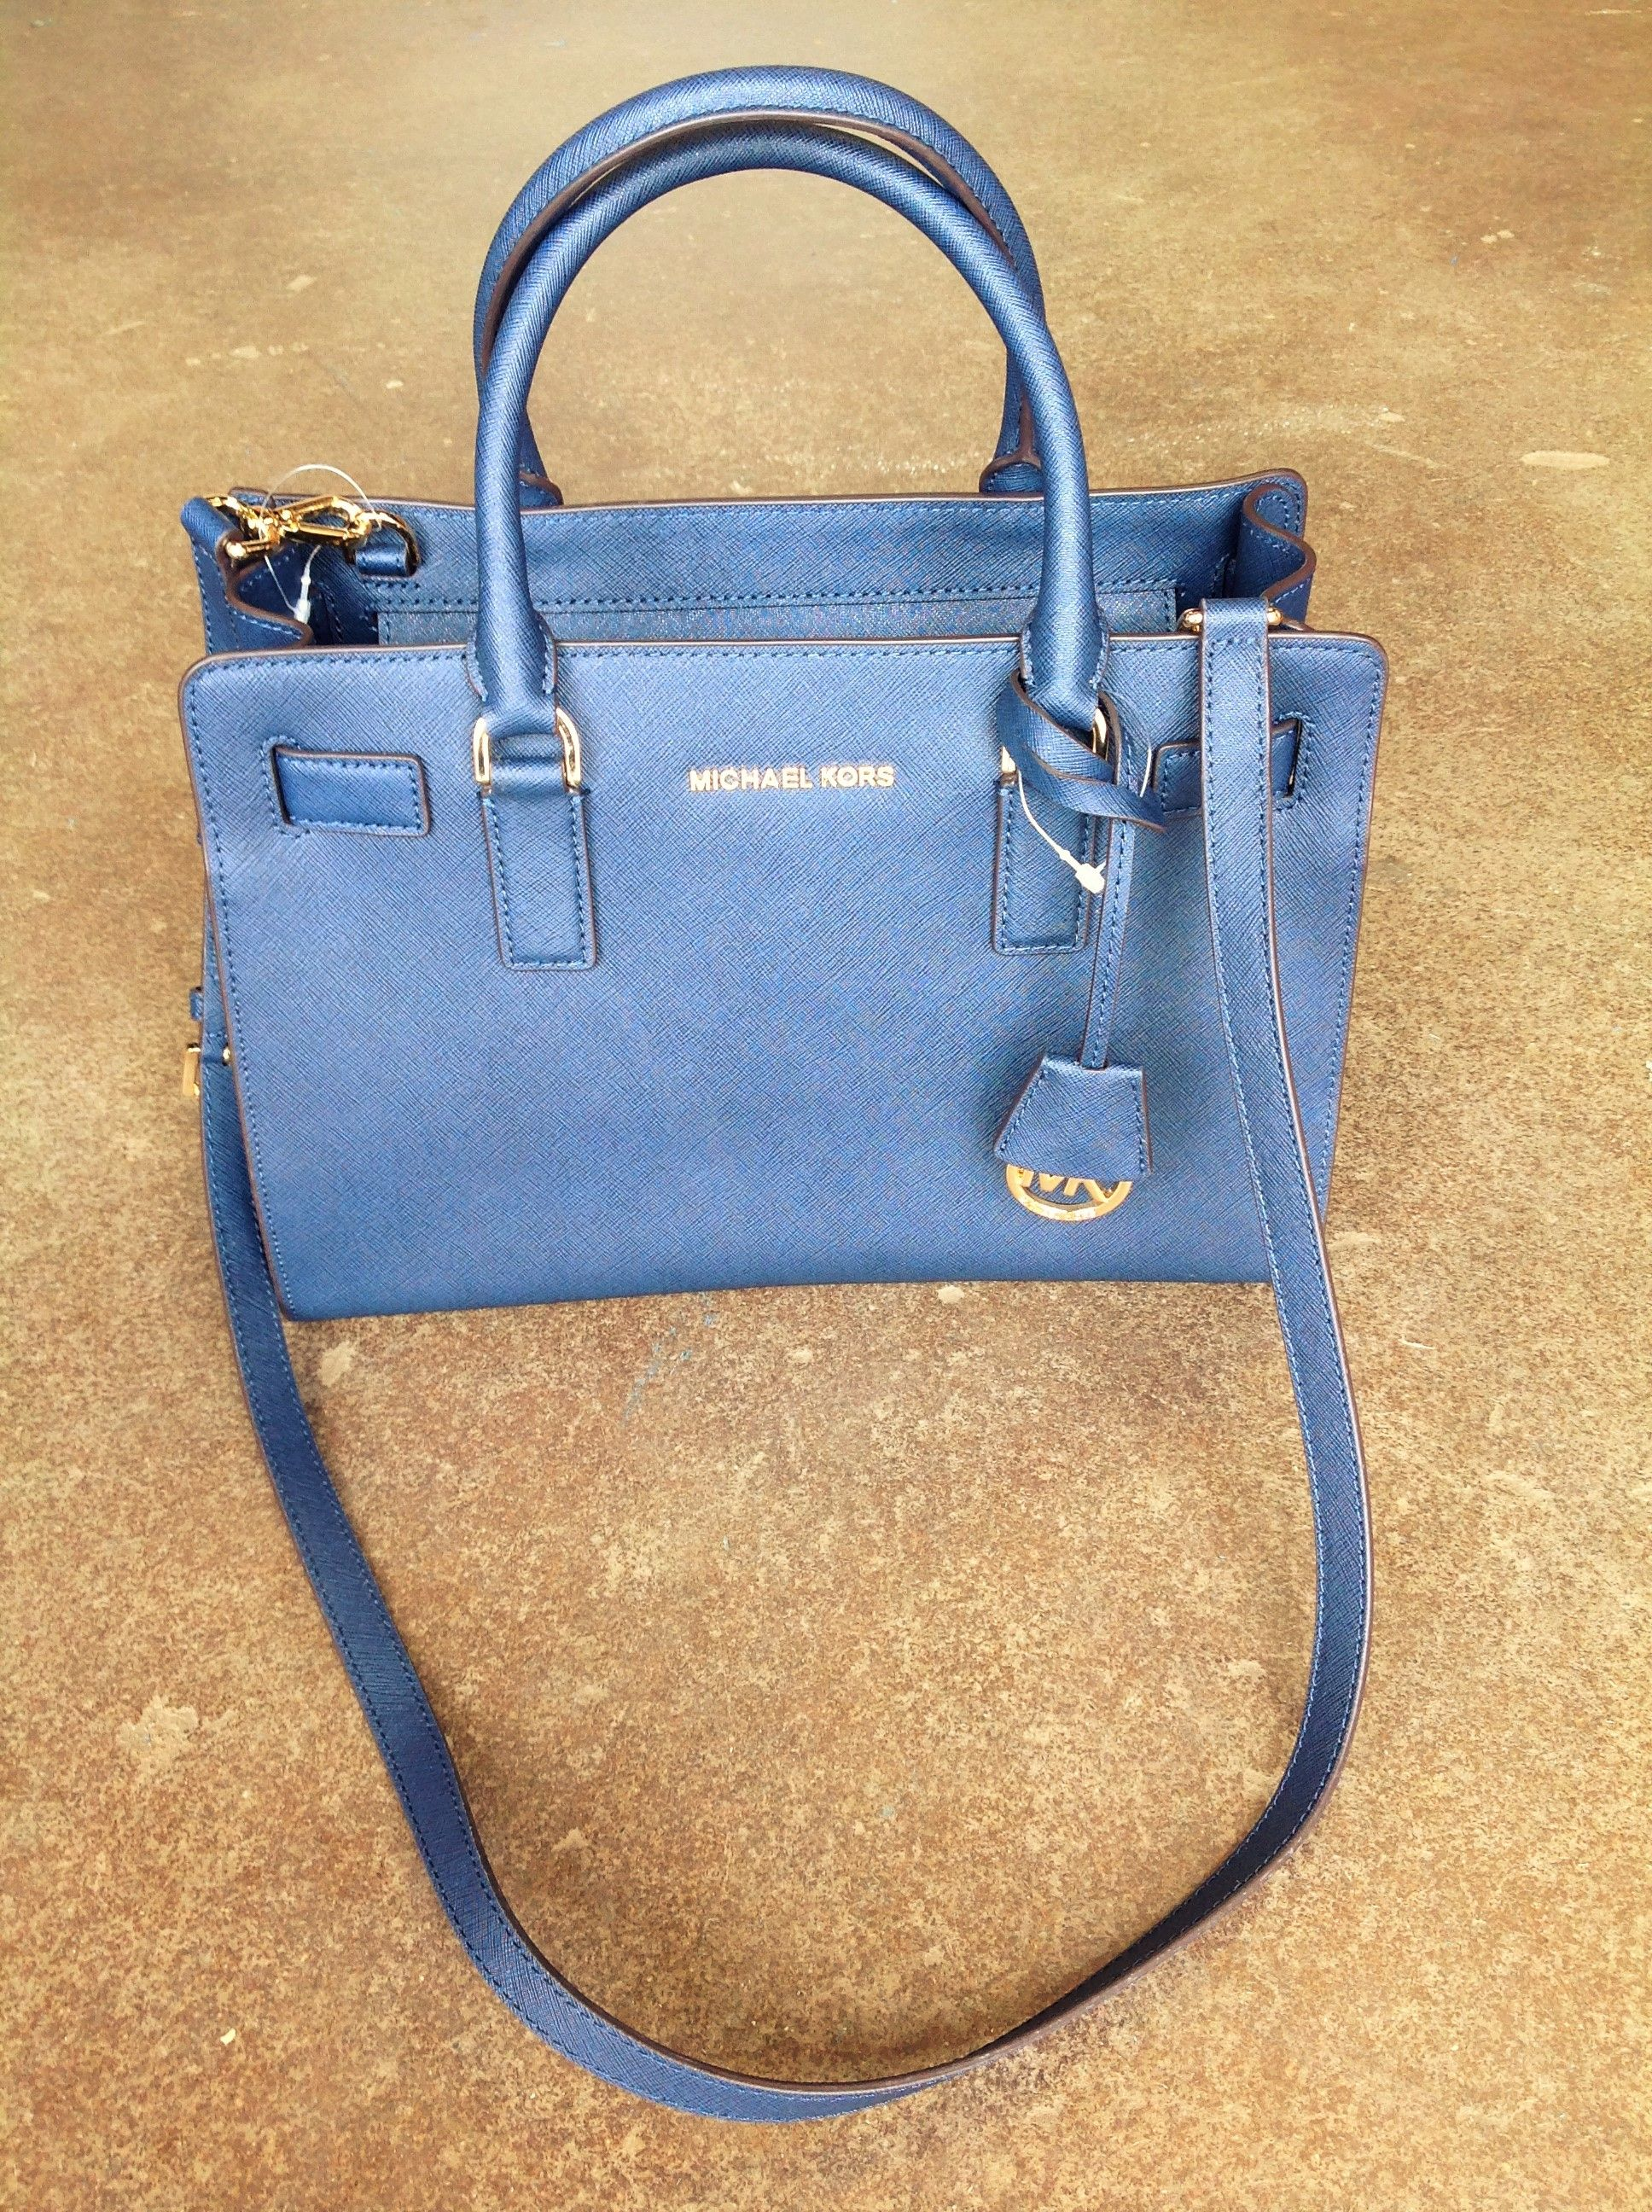 6 Ways to Tell a Fake Michael Kors Handbag From the Real Thing ... 9155d3d236